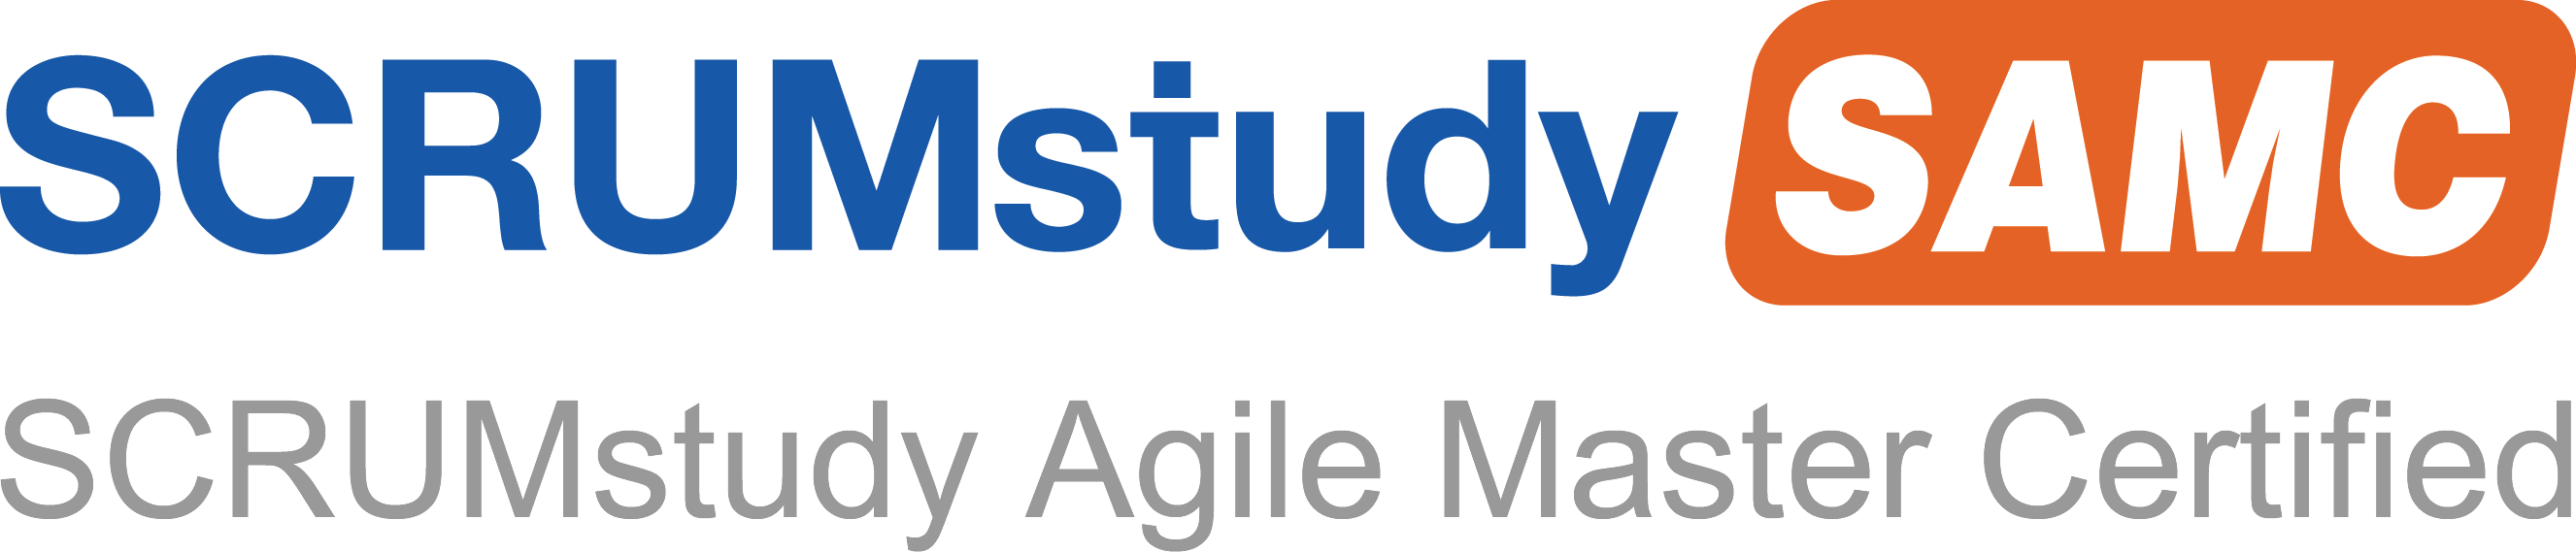 SCRUMstudy Agile Master Certified Logo